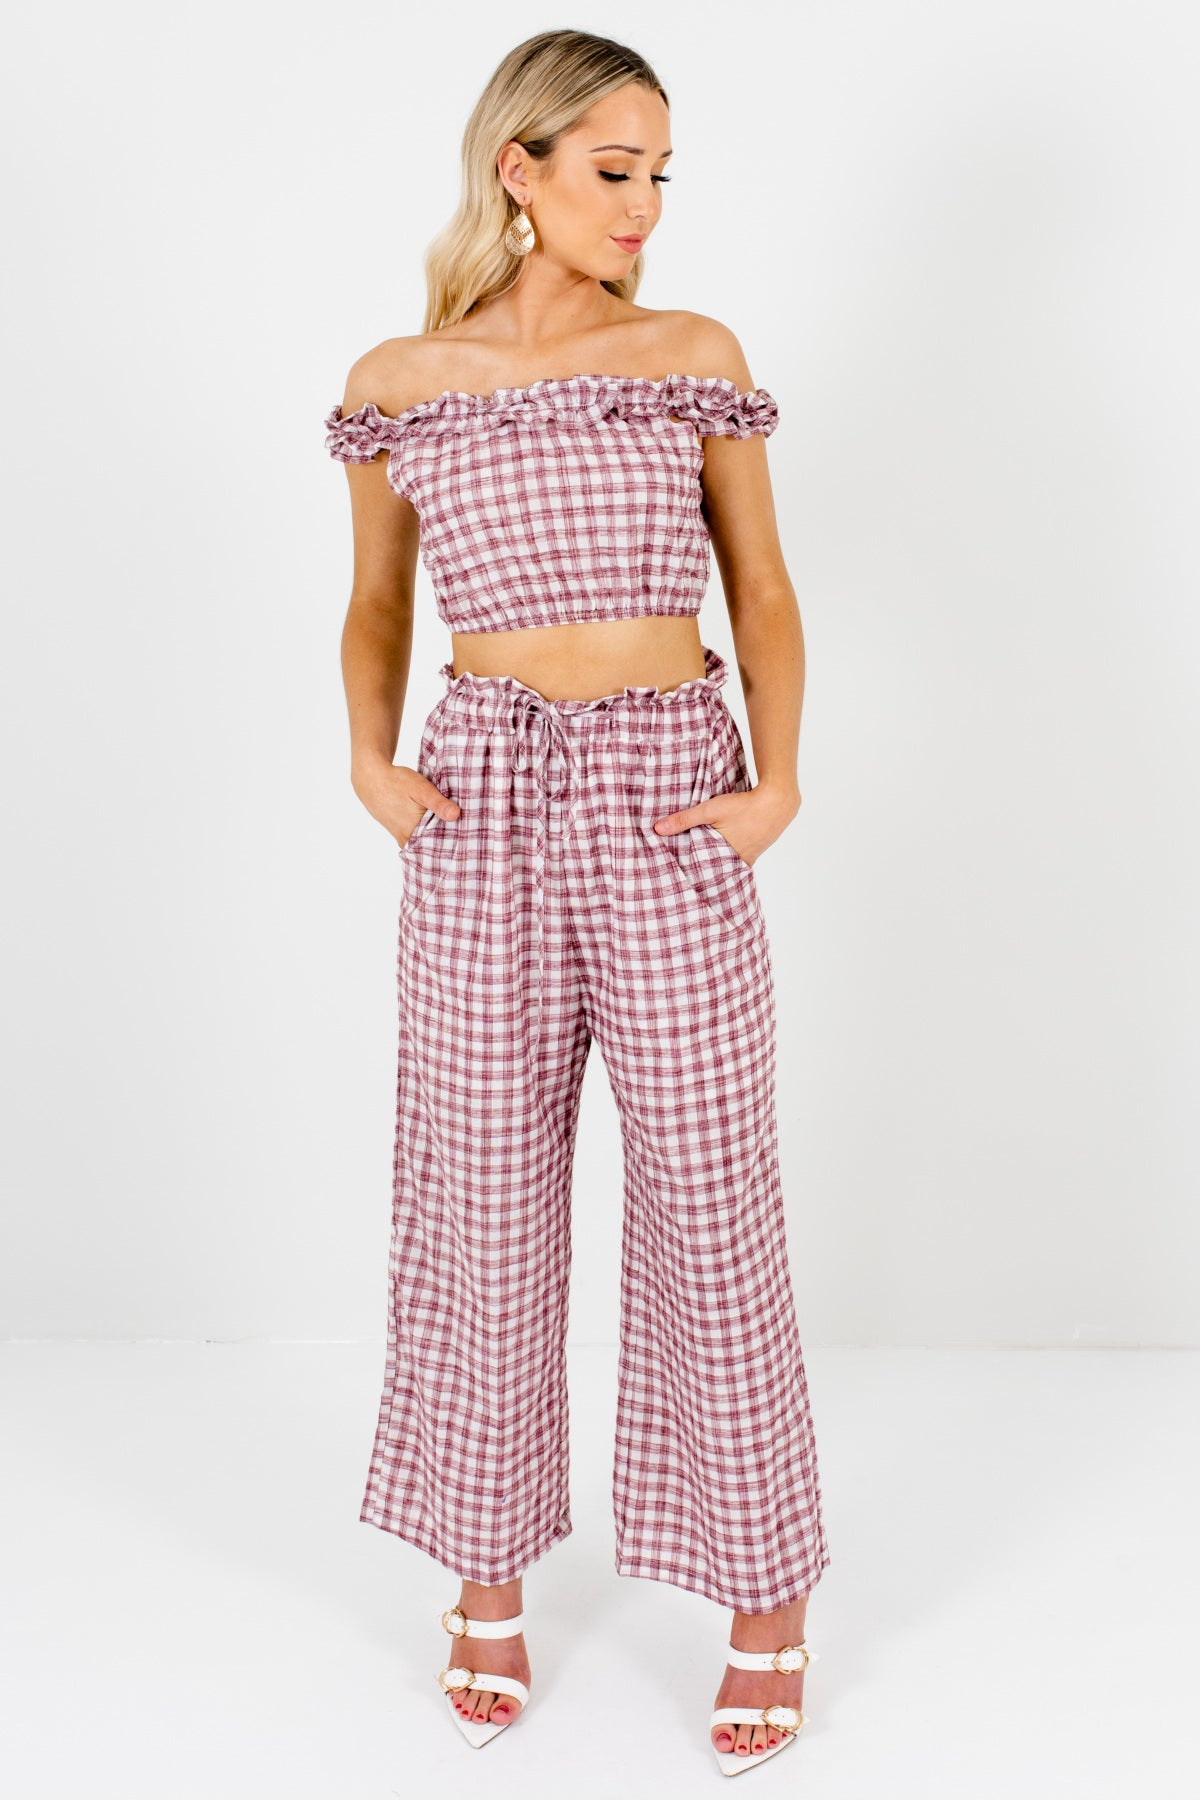 White Maroon Plaid Two-Piece Crop Top and Pants Matching Set